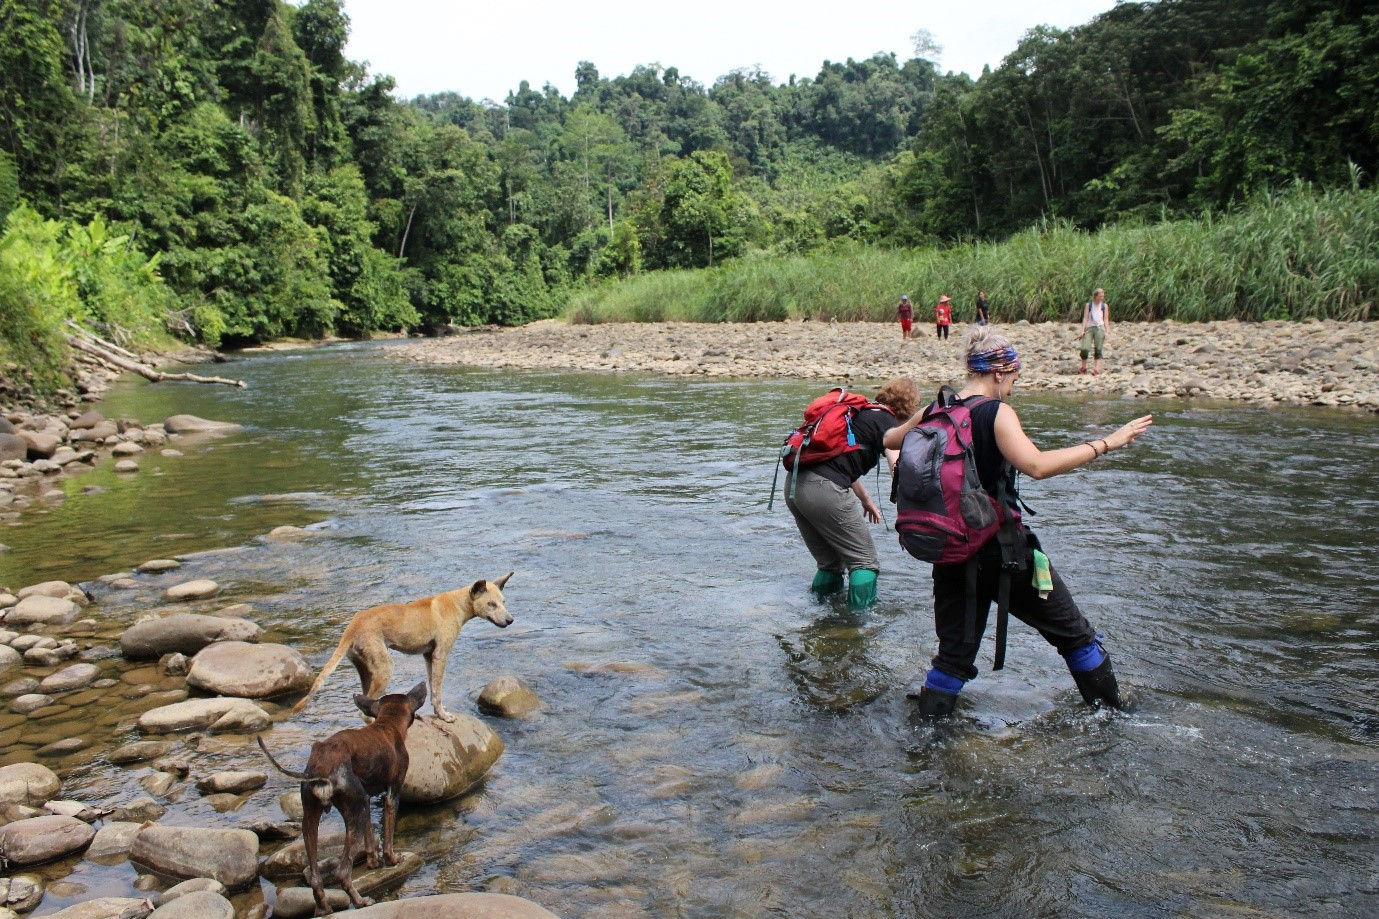 The first river crossing. We didn't realise there were about a dozen more to come. Each time it was so refreshing to wade through thigh-deep water; a welcome relief from the tropical humidity. Thankfully my camera avoided any refreshing dips though!